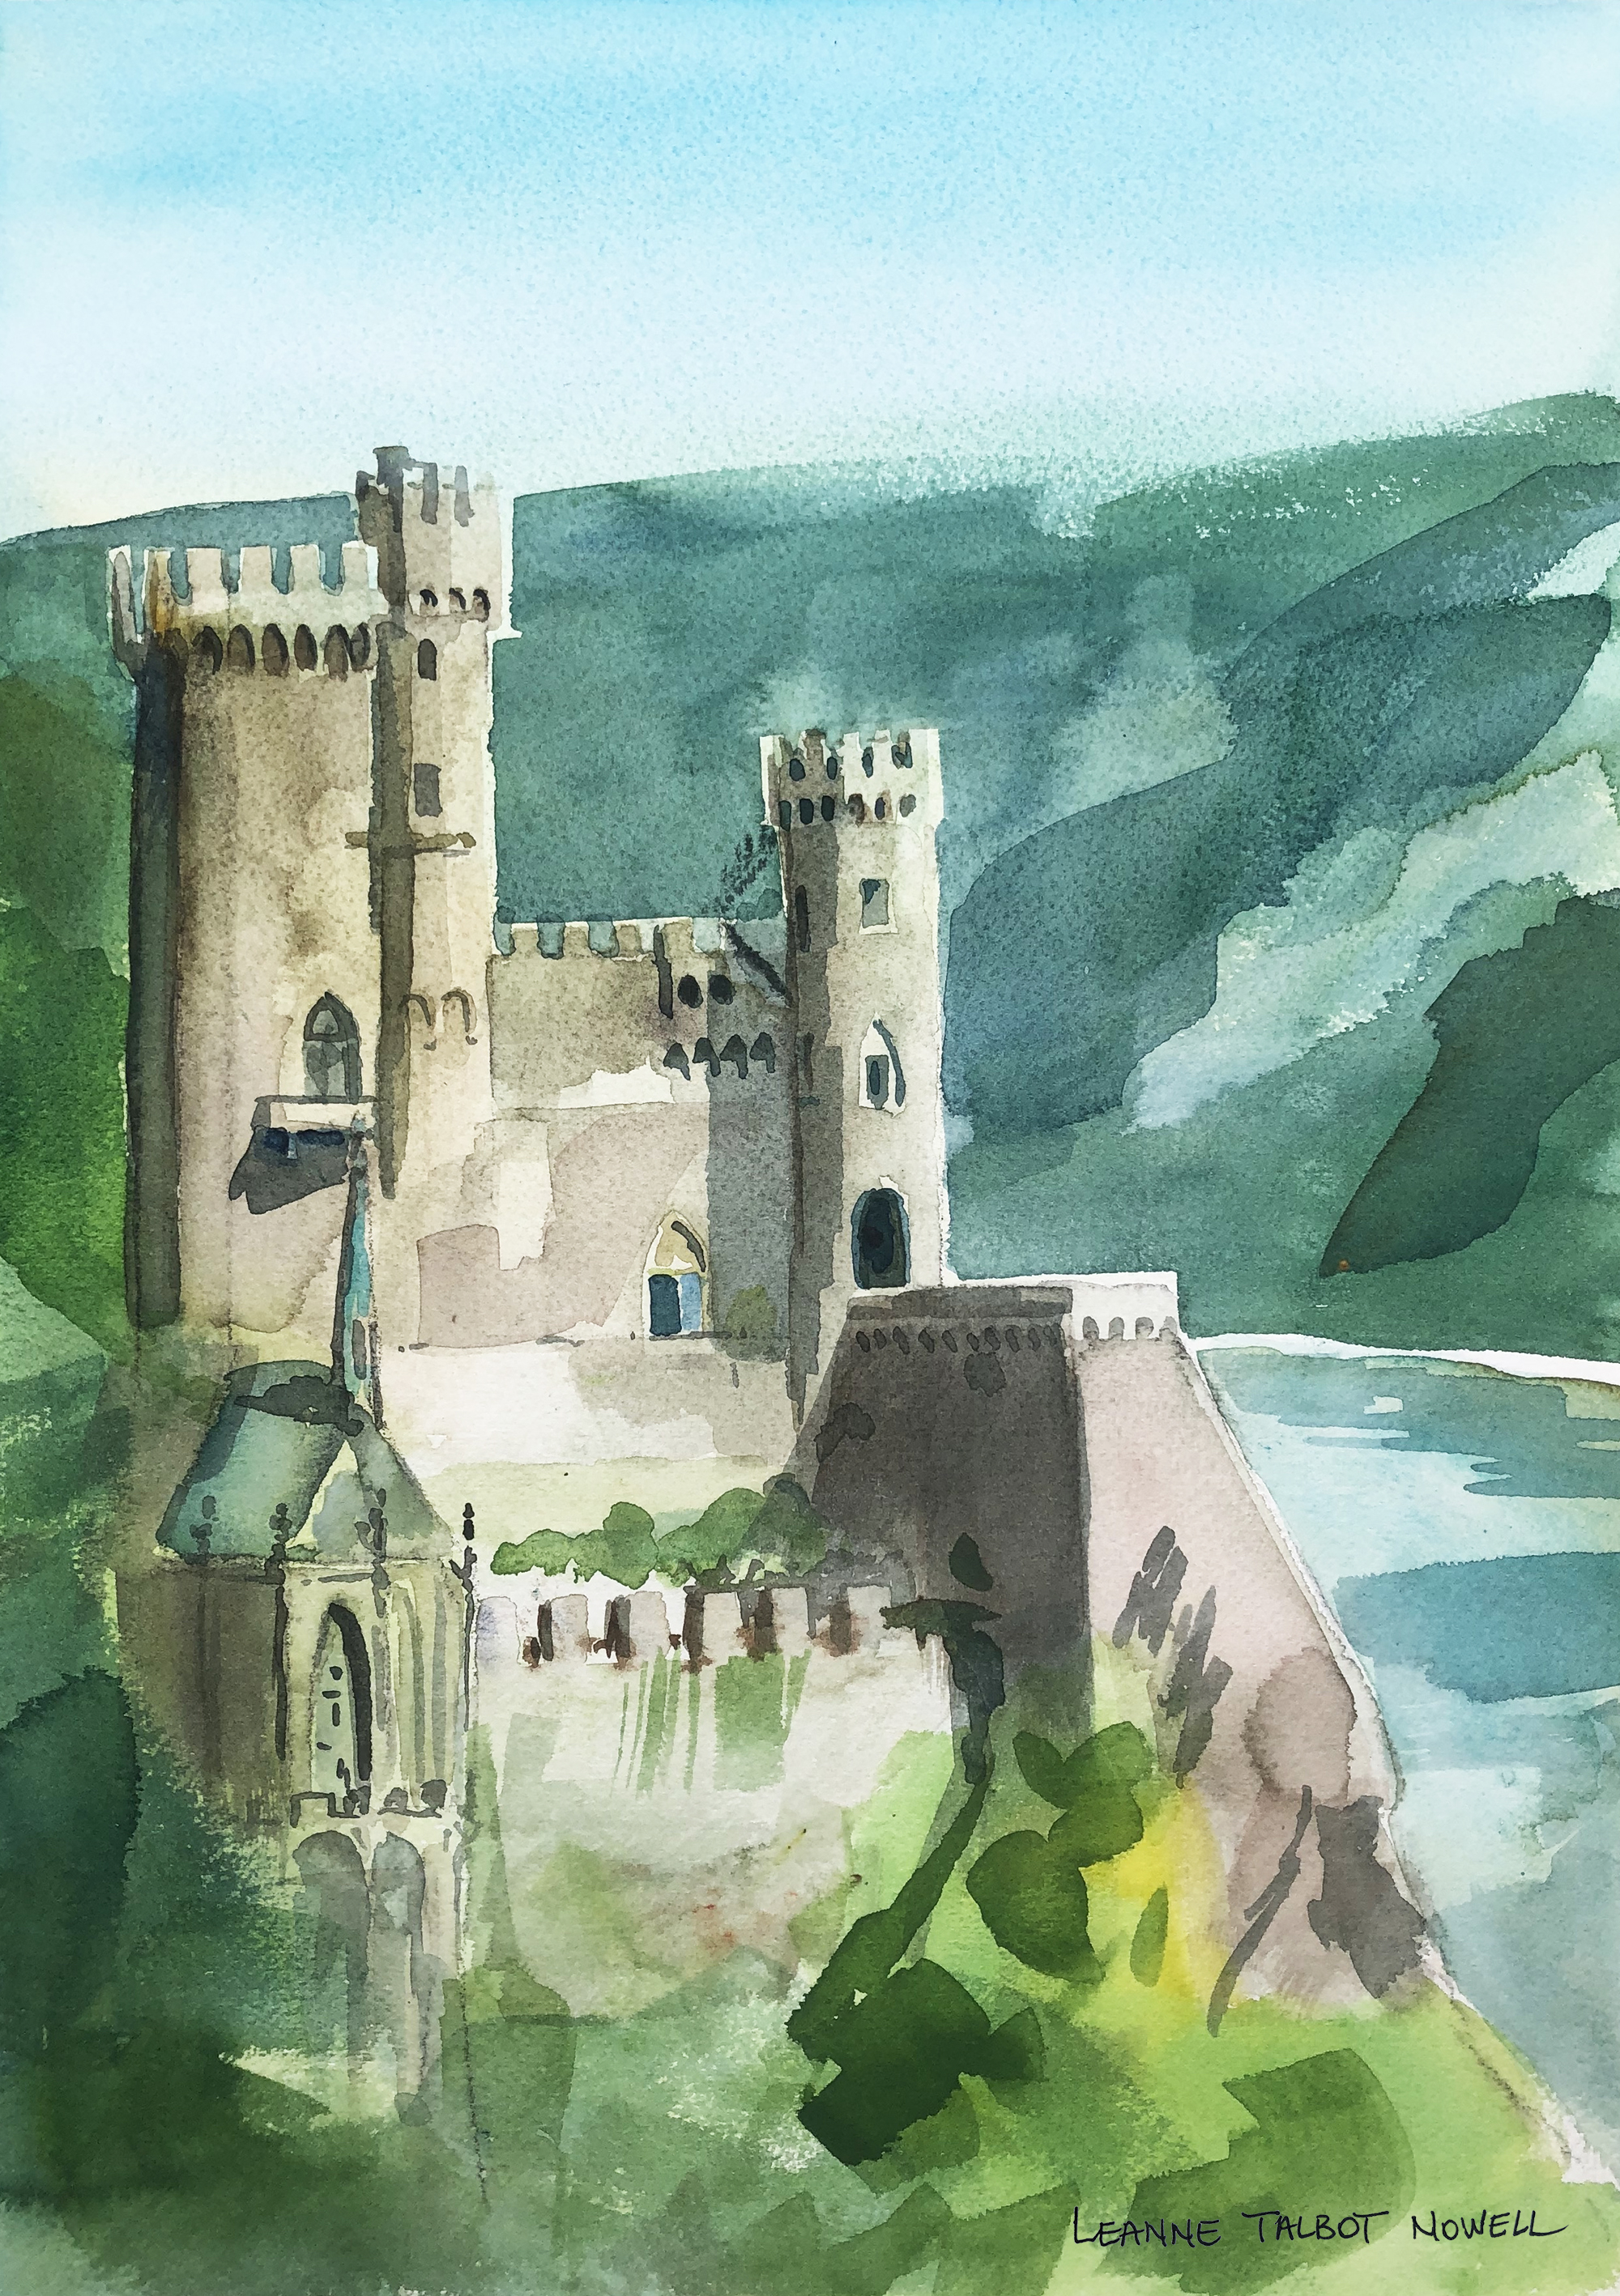 Rheinstein Castle on the Rhine river, watercolour by Leanne Talbot Nowell